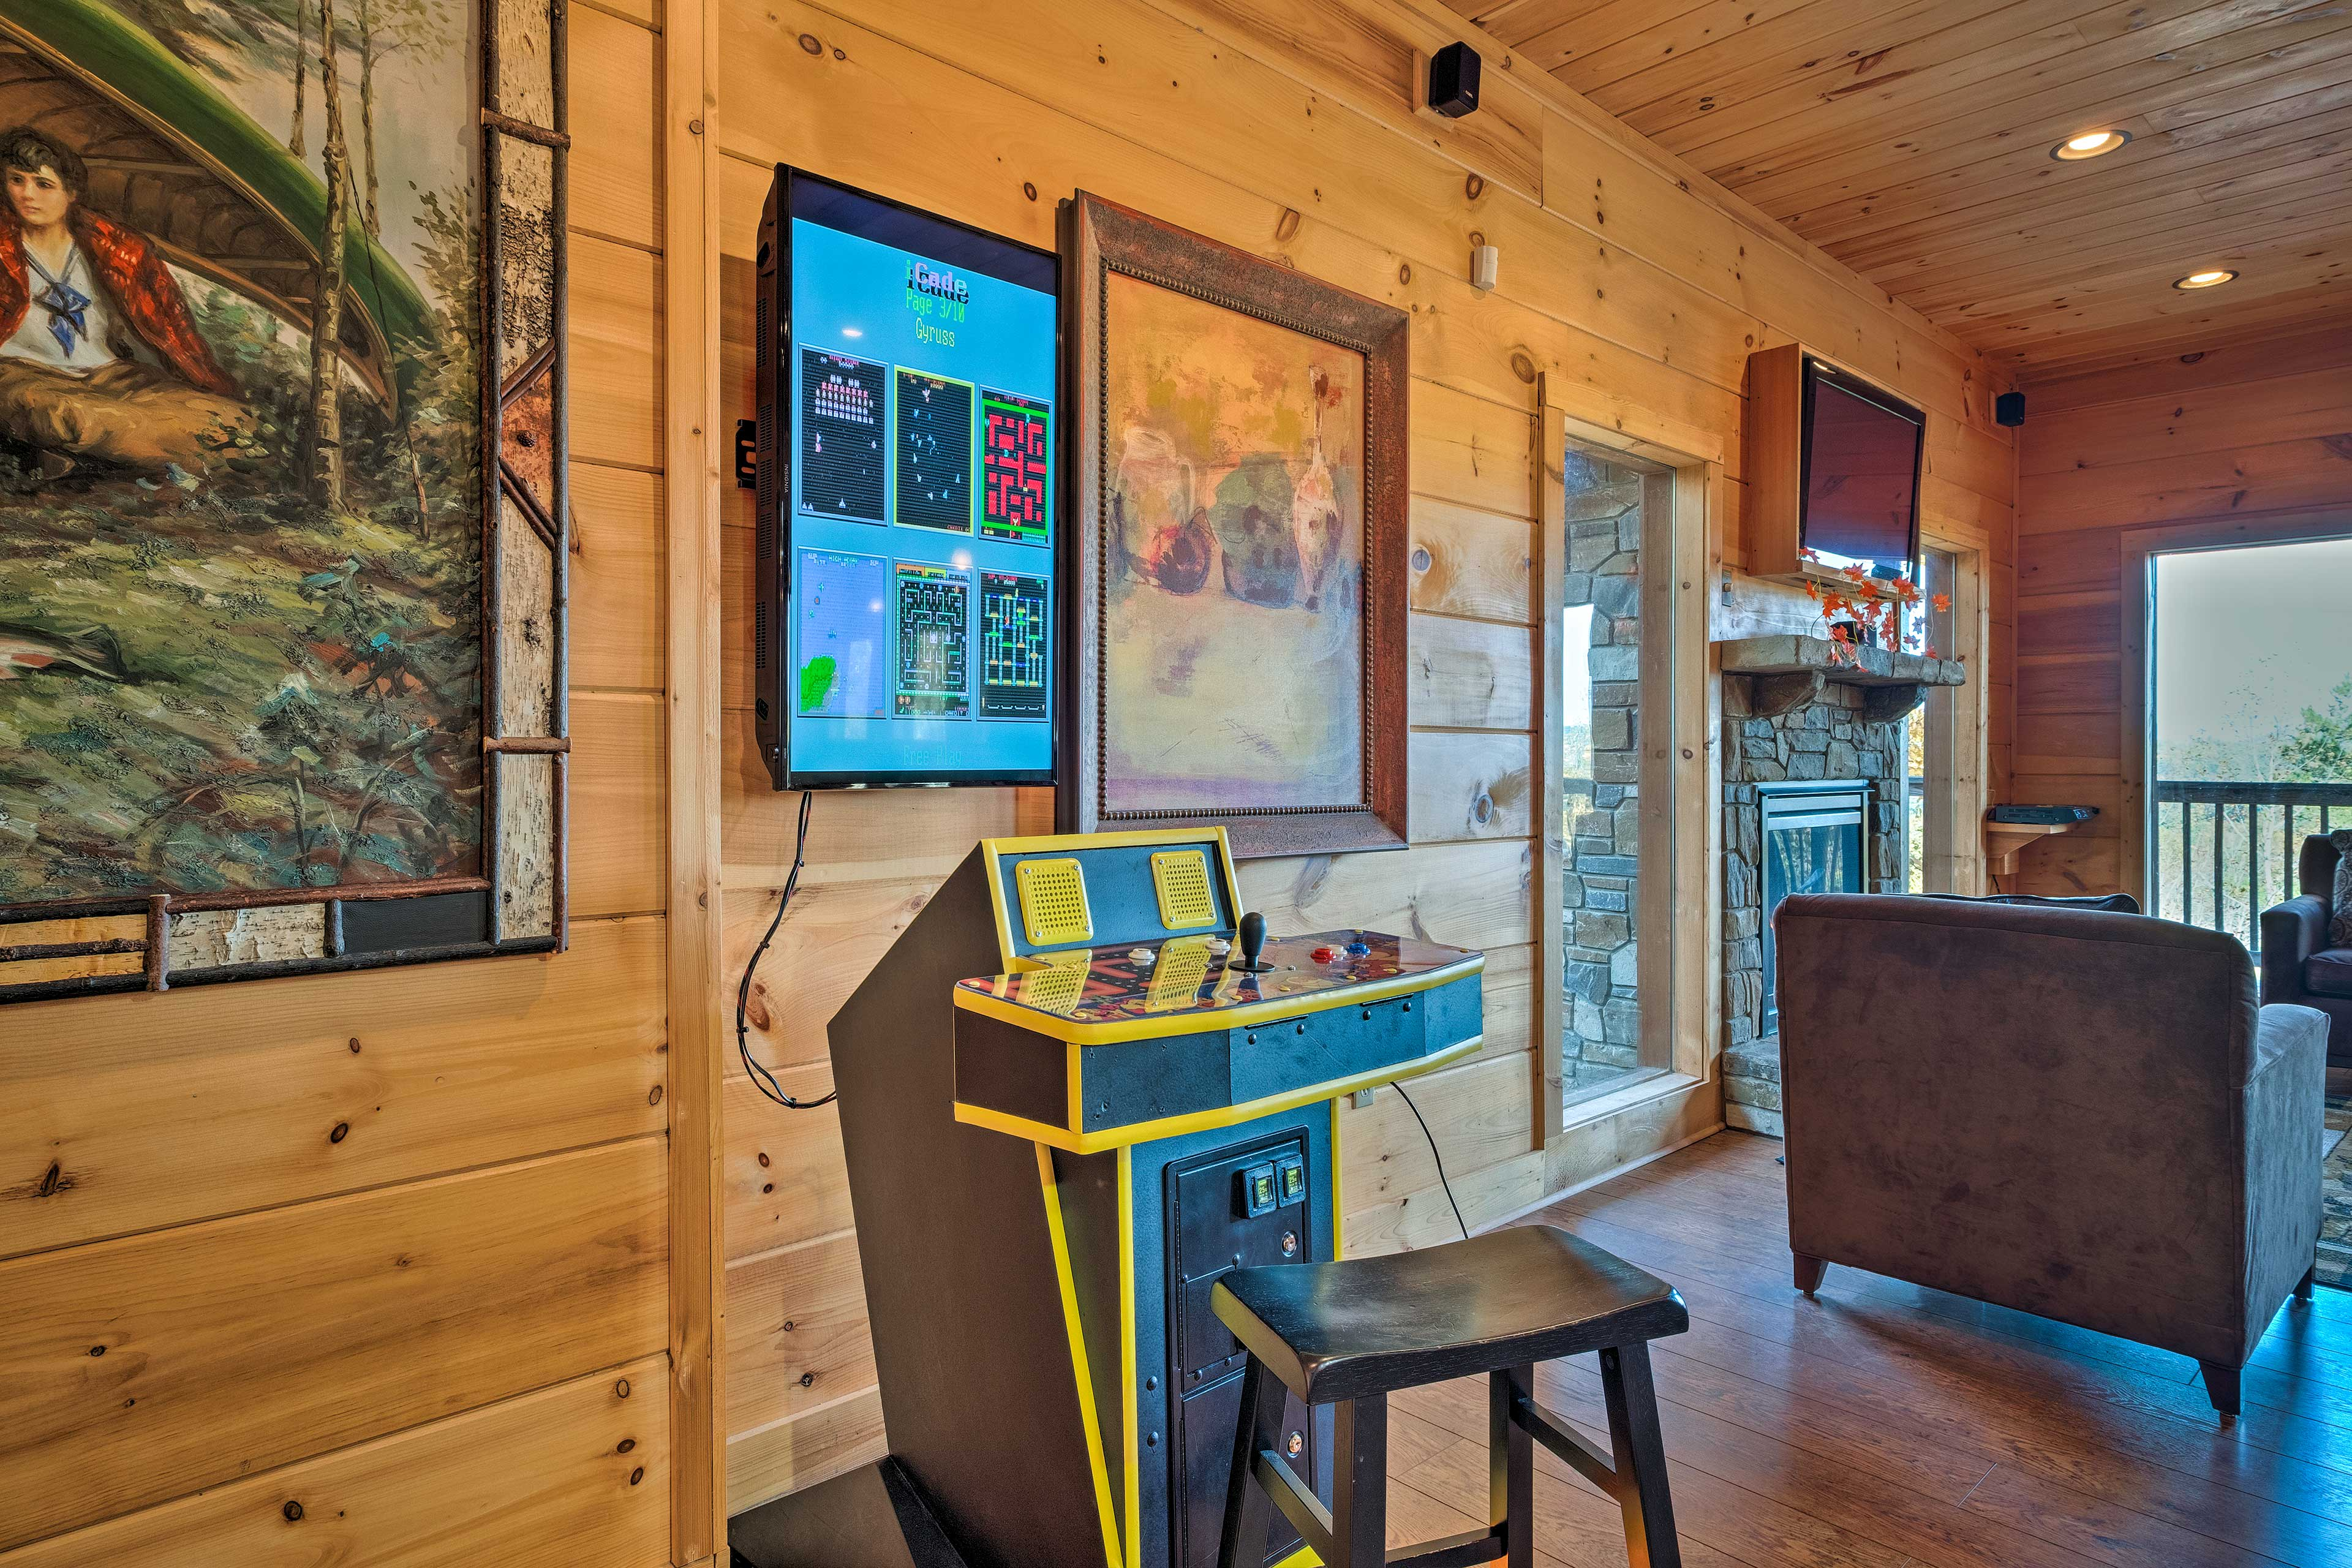 Step back in time with a game on this old fashioned arcade game.